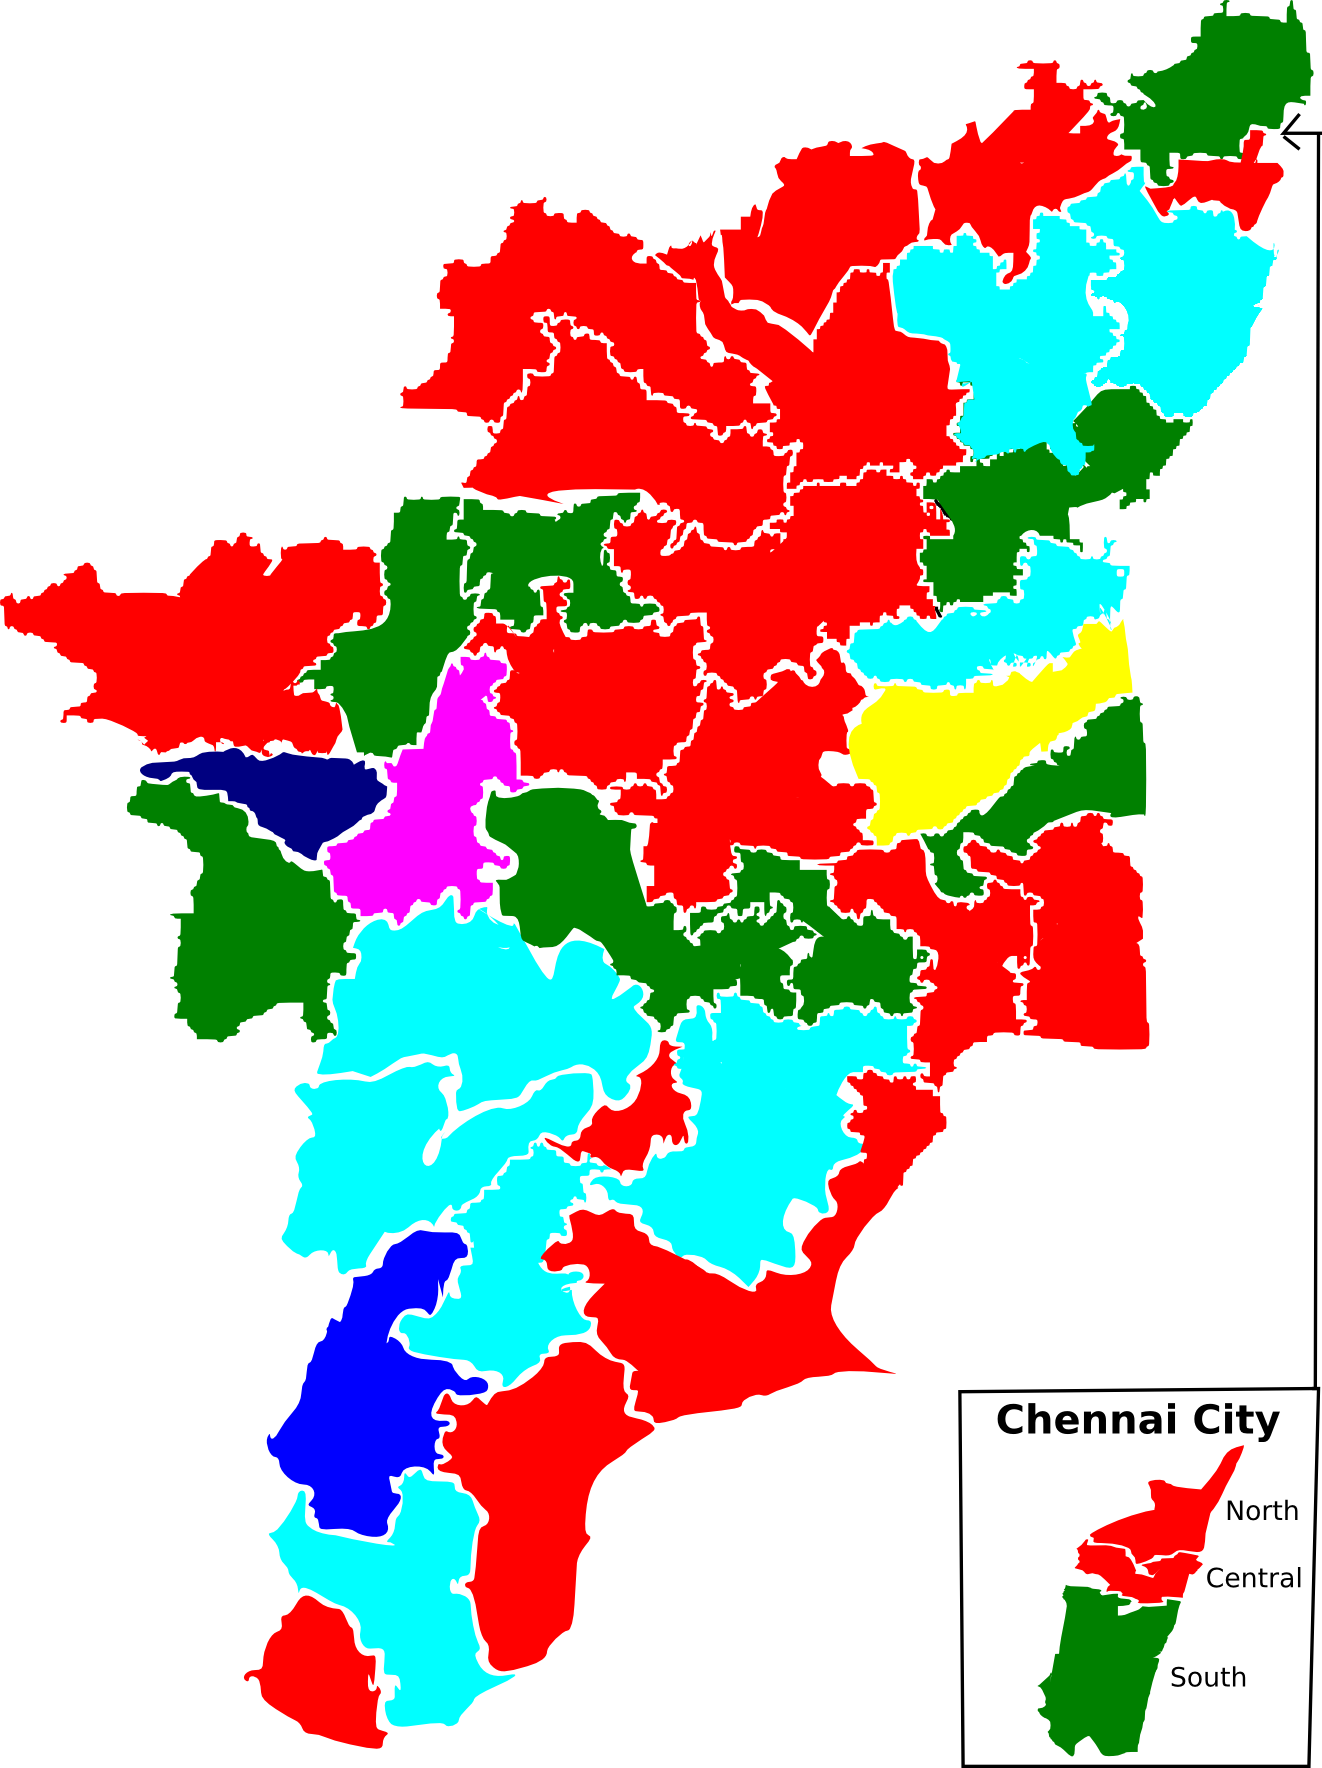 File2009 tamil nadu lok sabha election map by partiesg file2009 tamil nadu lok sabha election map by partiesg gumiabroncs Image collections